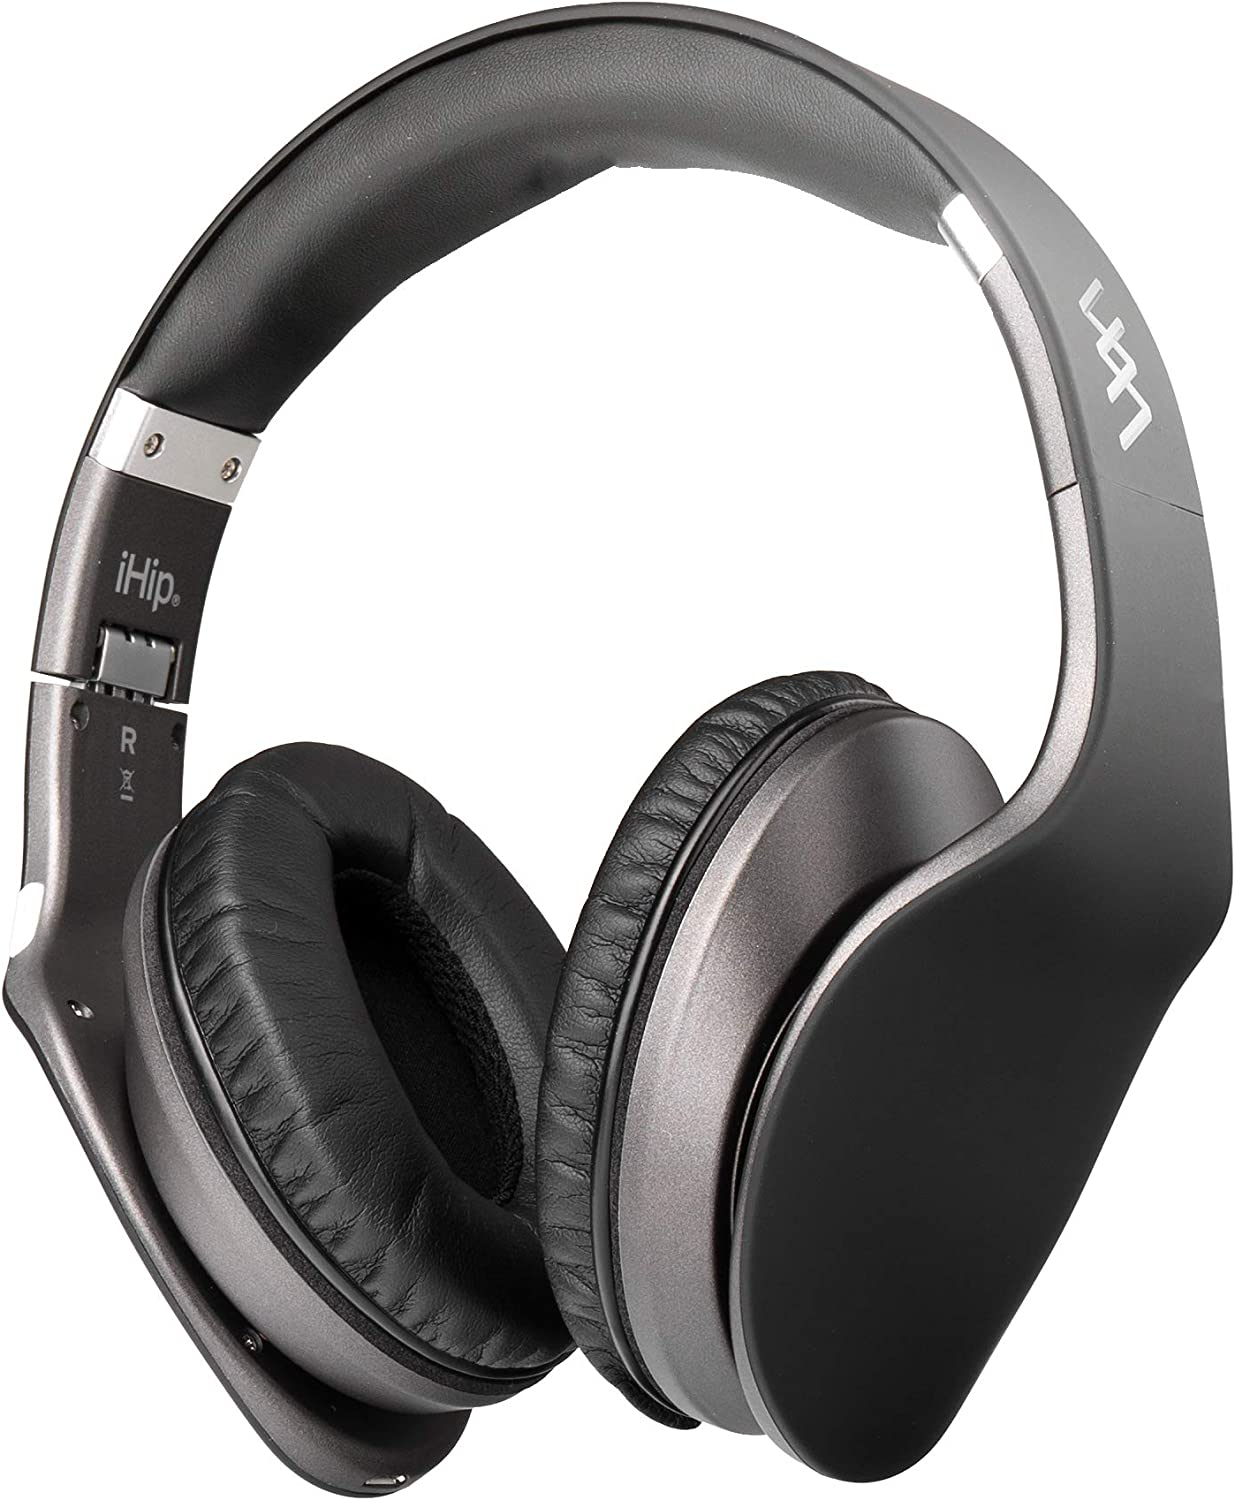 iHip Side Swipe Touch Control Wireless Bluetooth Headphones Over Ear - Foldable, Soft Memory-Protein Earmuffs, w/Built-in Mic and Wired Mode for PC/Cell Phones/TV - Black - Touch Only + Knob